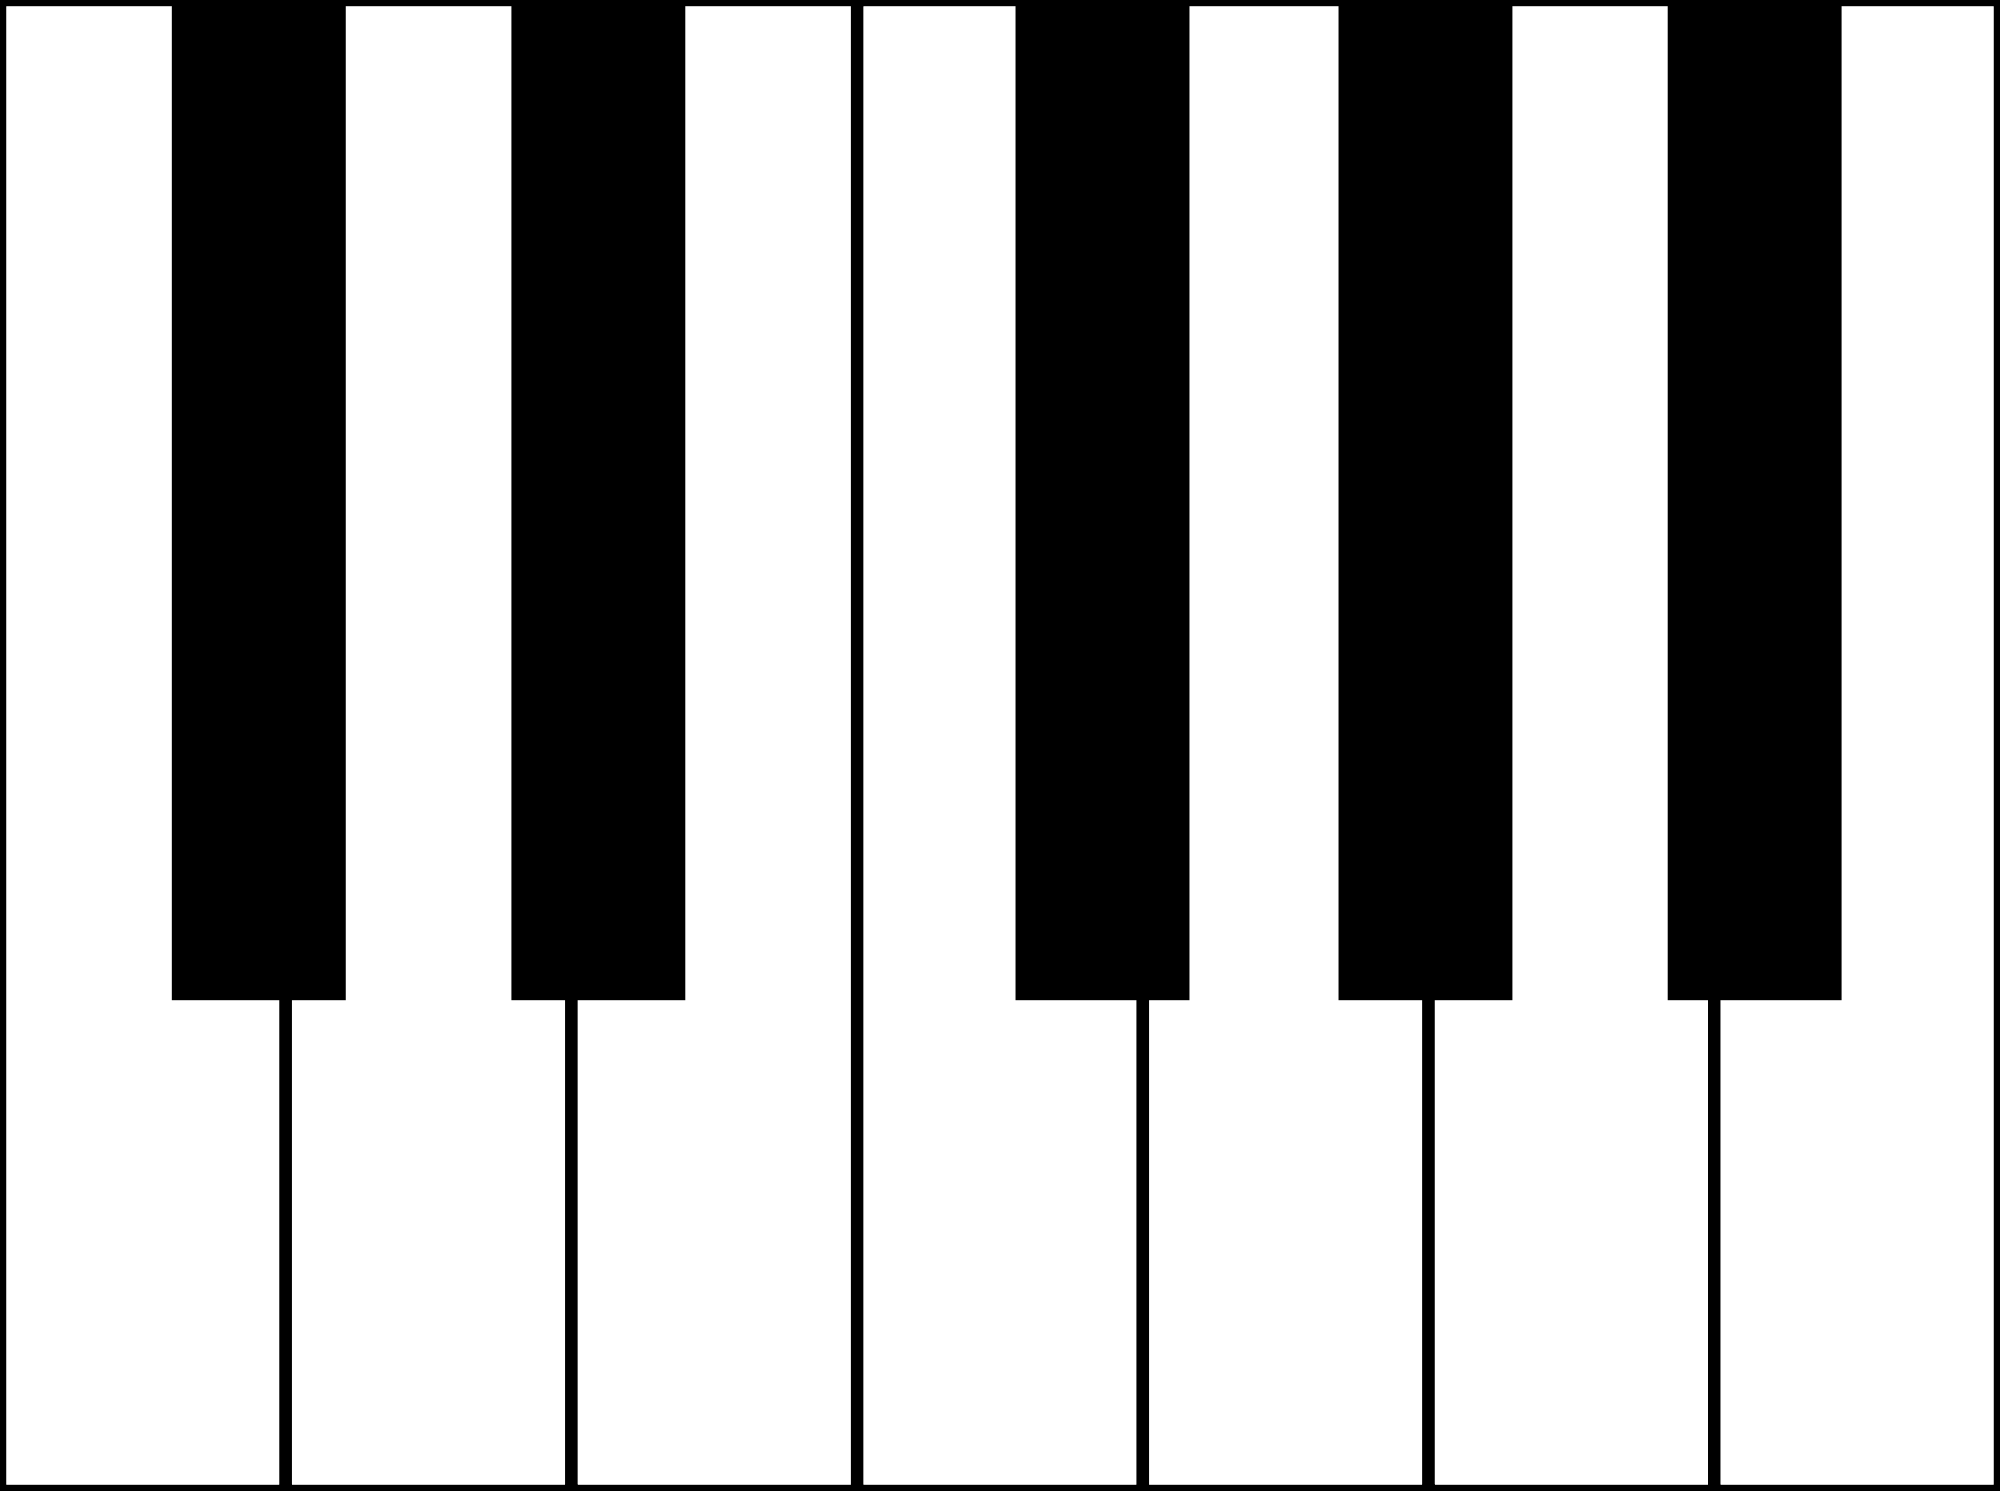 Free Piano Keyboard, Download Free Clip Art, Free Clip Art on.